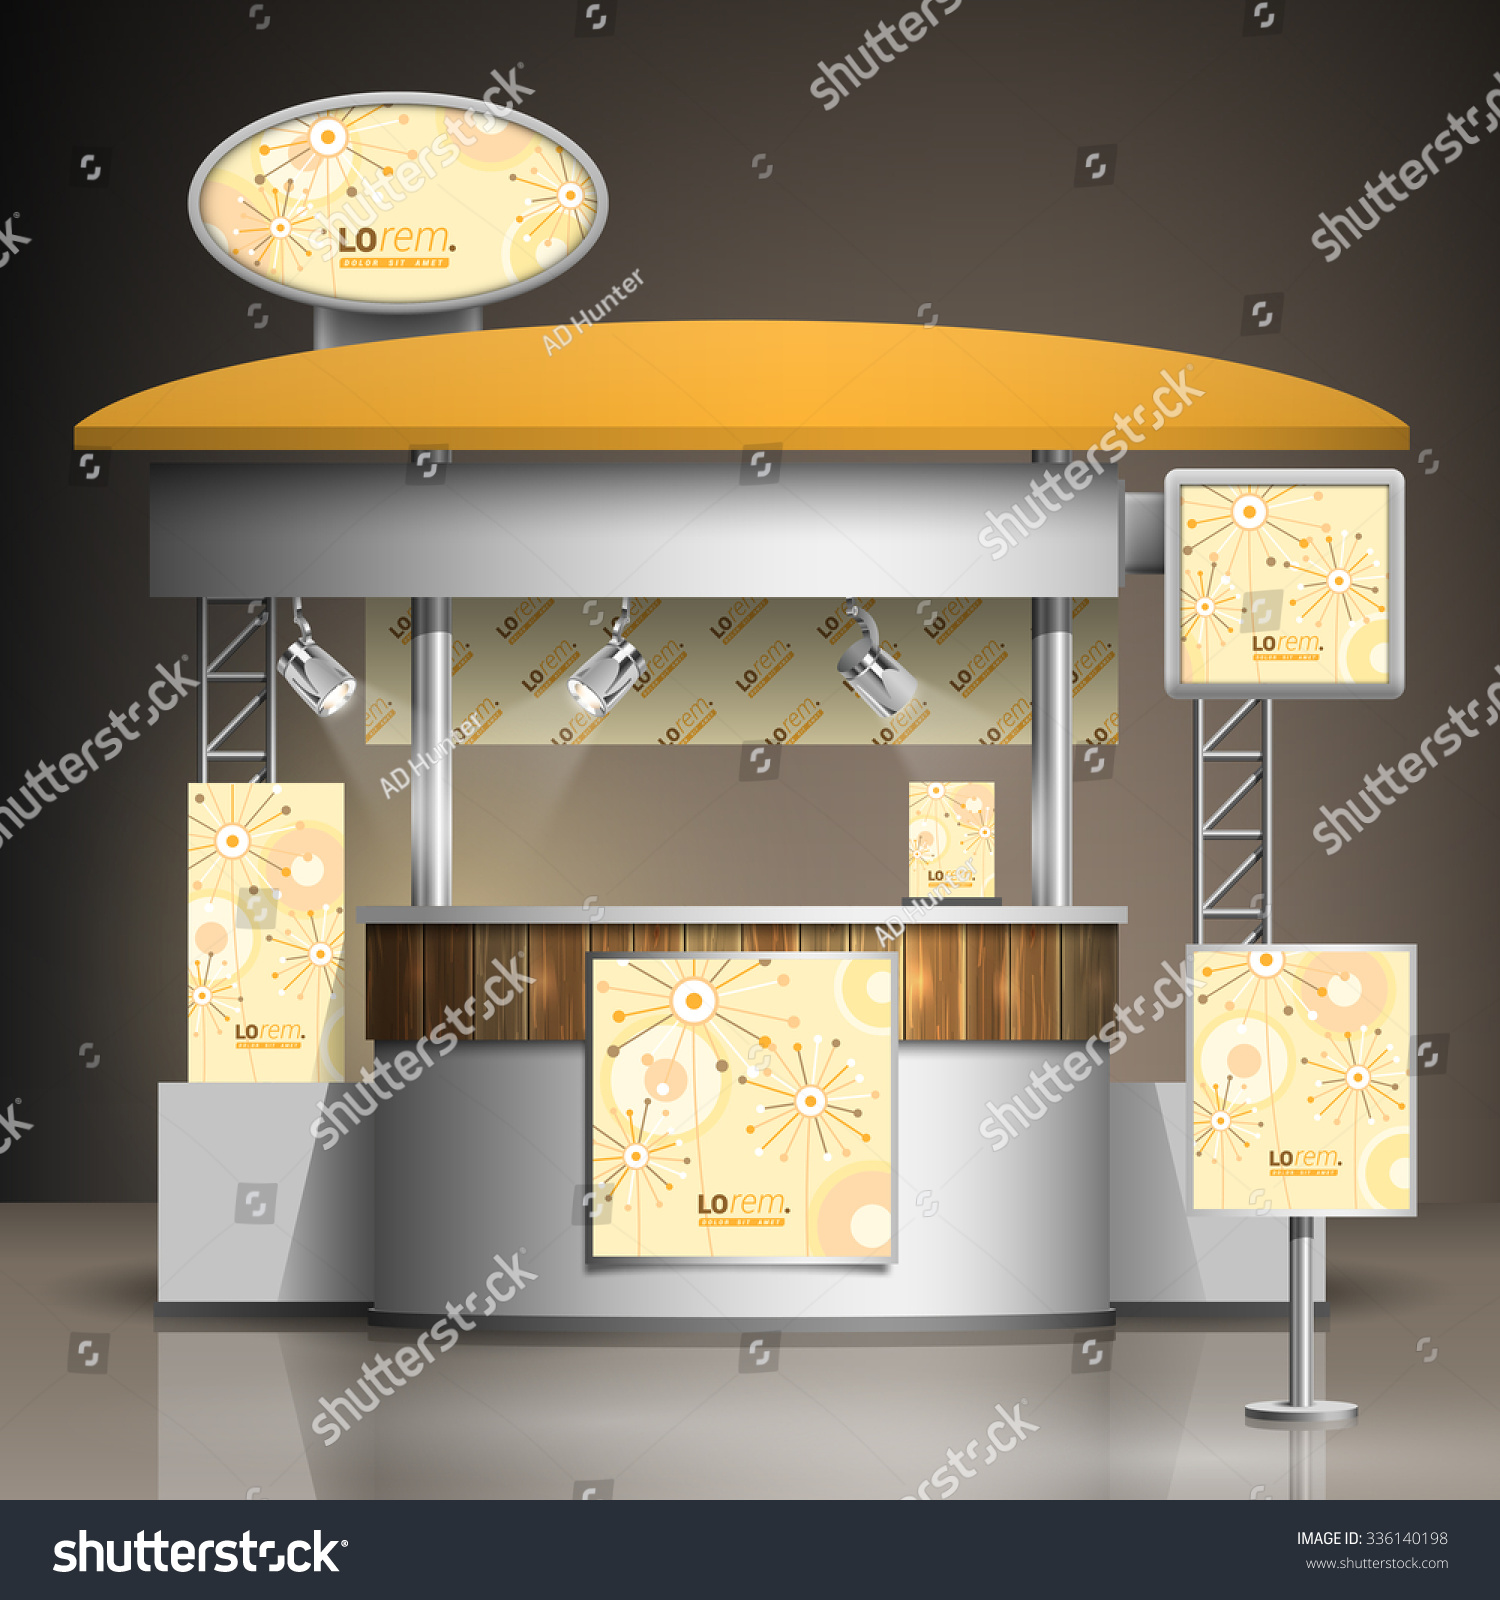 Exhibition Stand Elements : Vintage exhibition stand design creative flowers stock